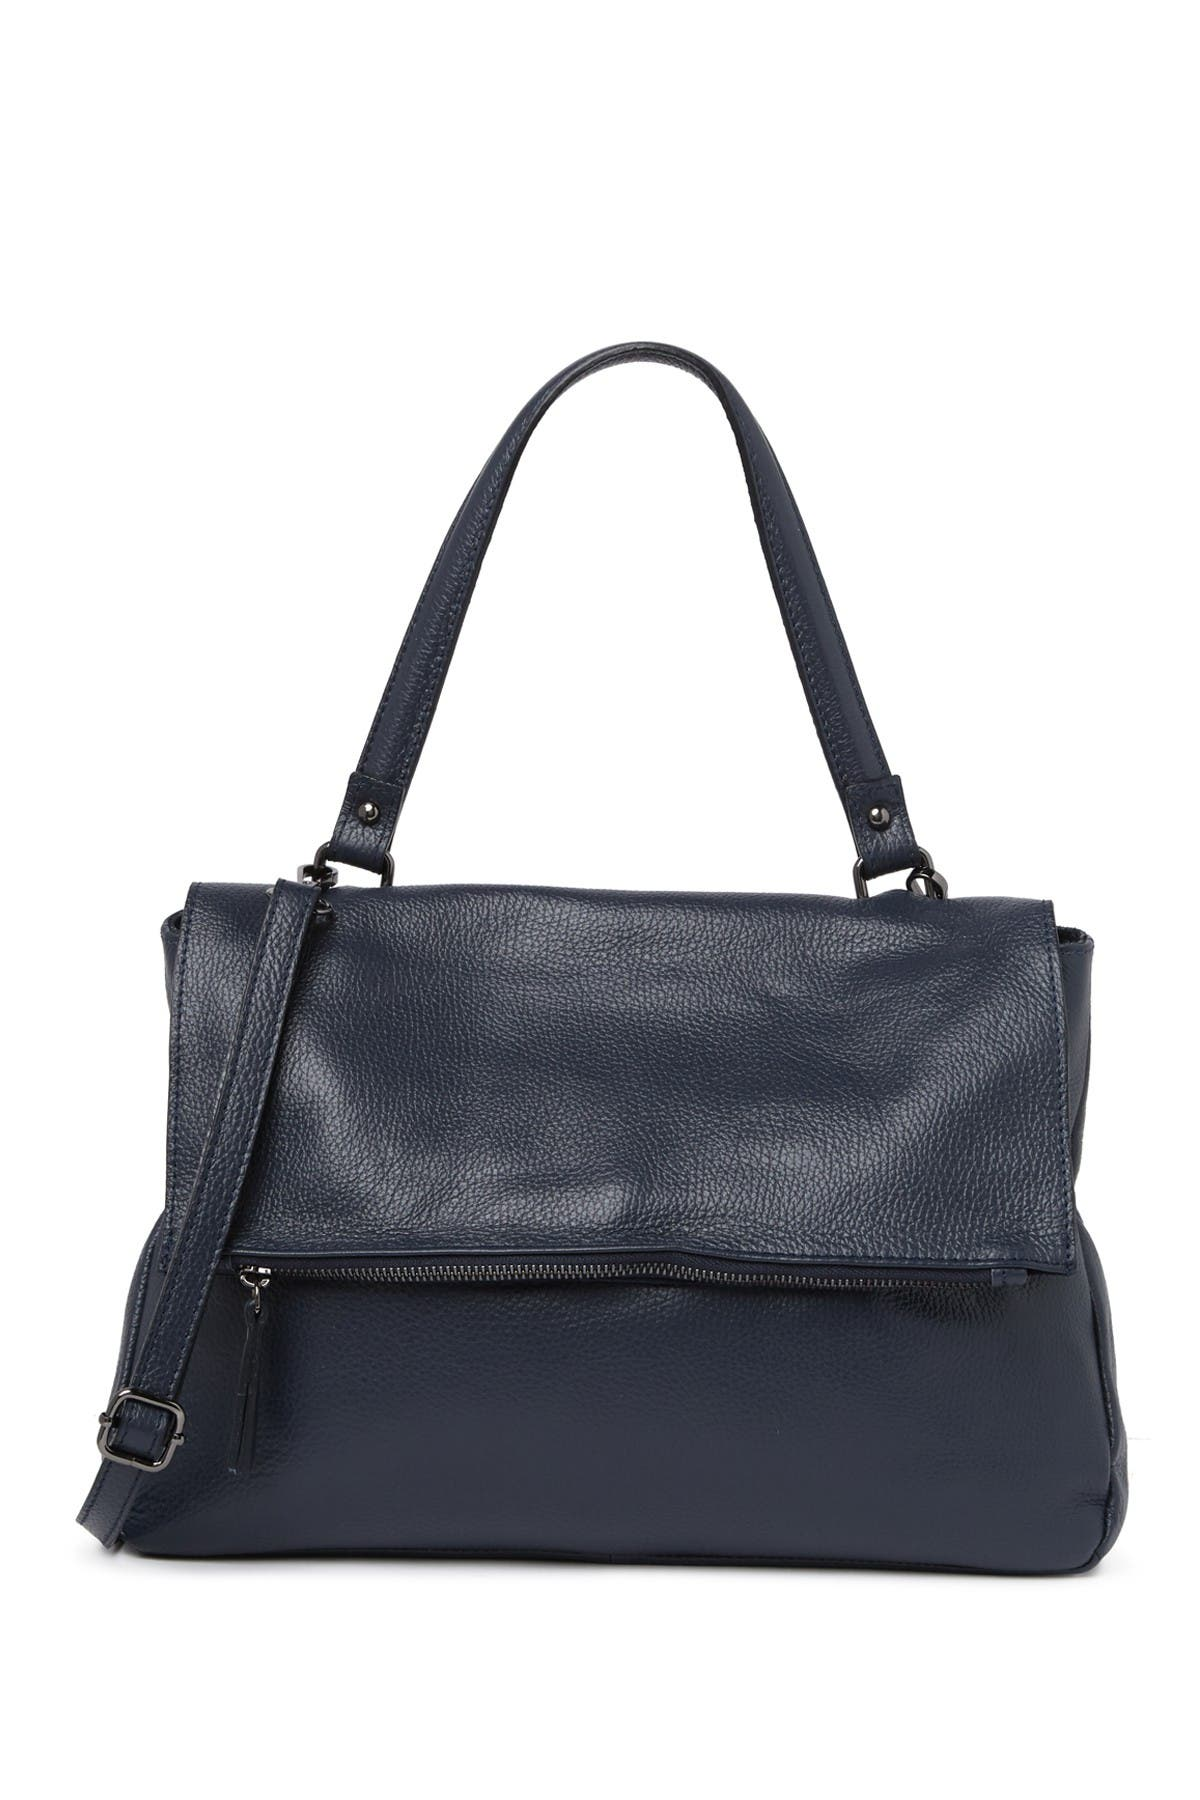 Image of Carla Ferreri Flap Shoulder Handbag